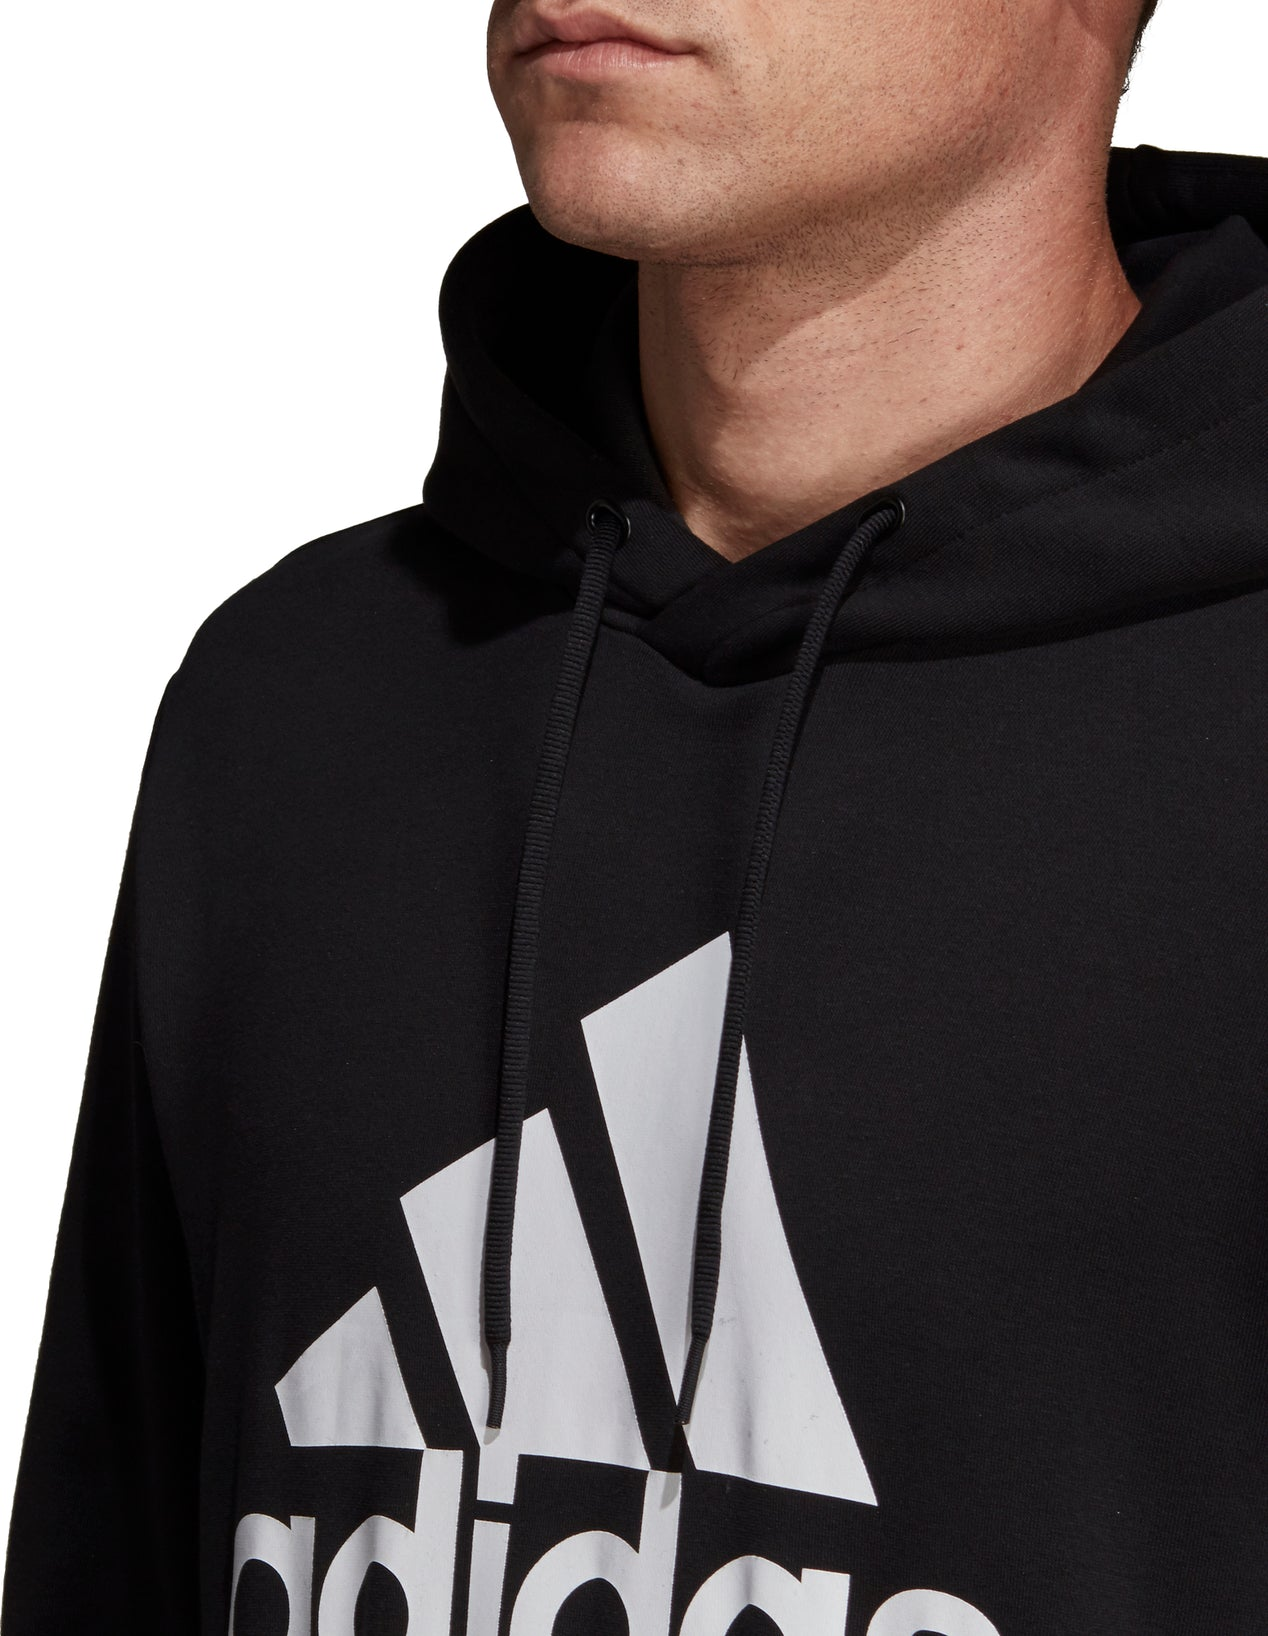 a6eea8ad3f3a25 ... Black · Adidas Must Haves Badge of Sport Hoodie - Men's thumb ...